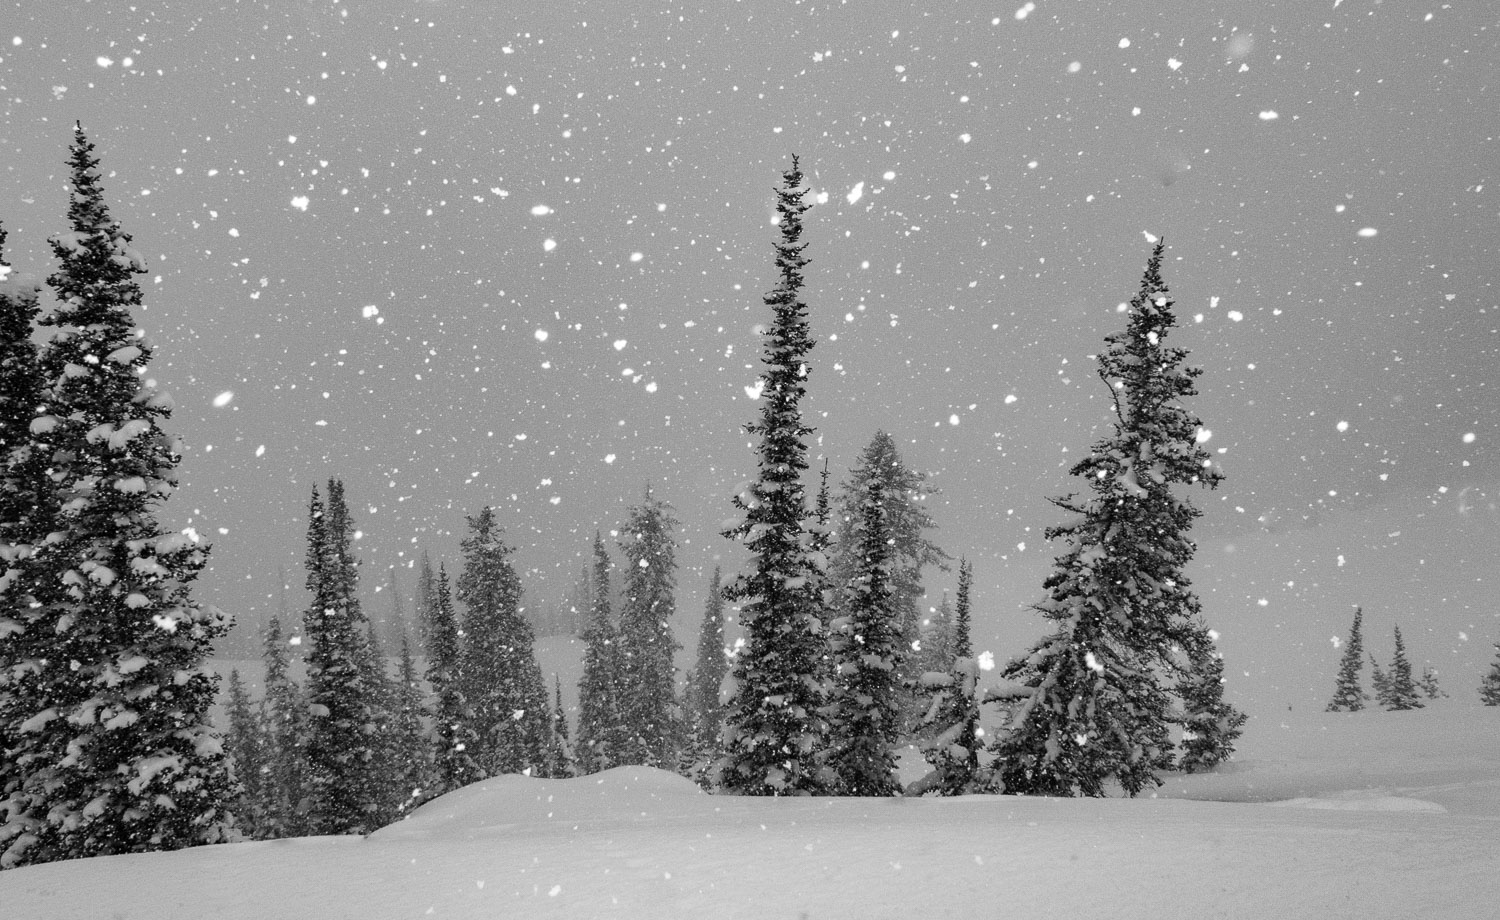 Black and White photograph of Snowflakes and Evergreen Trees dur